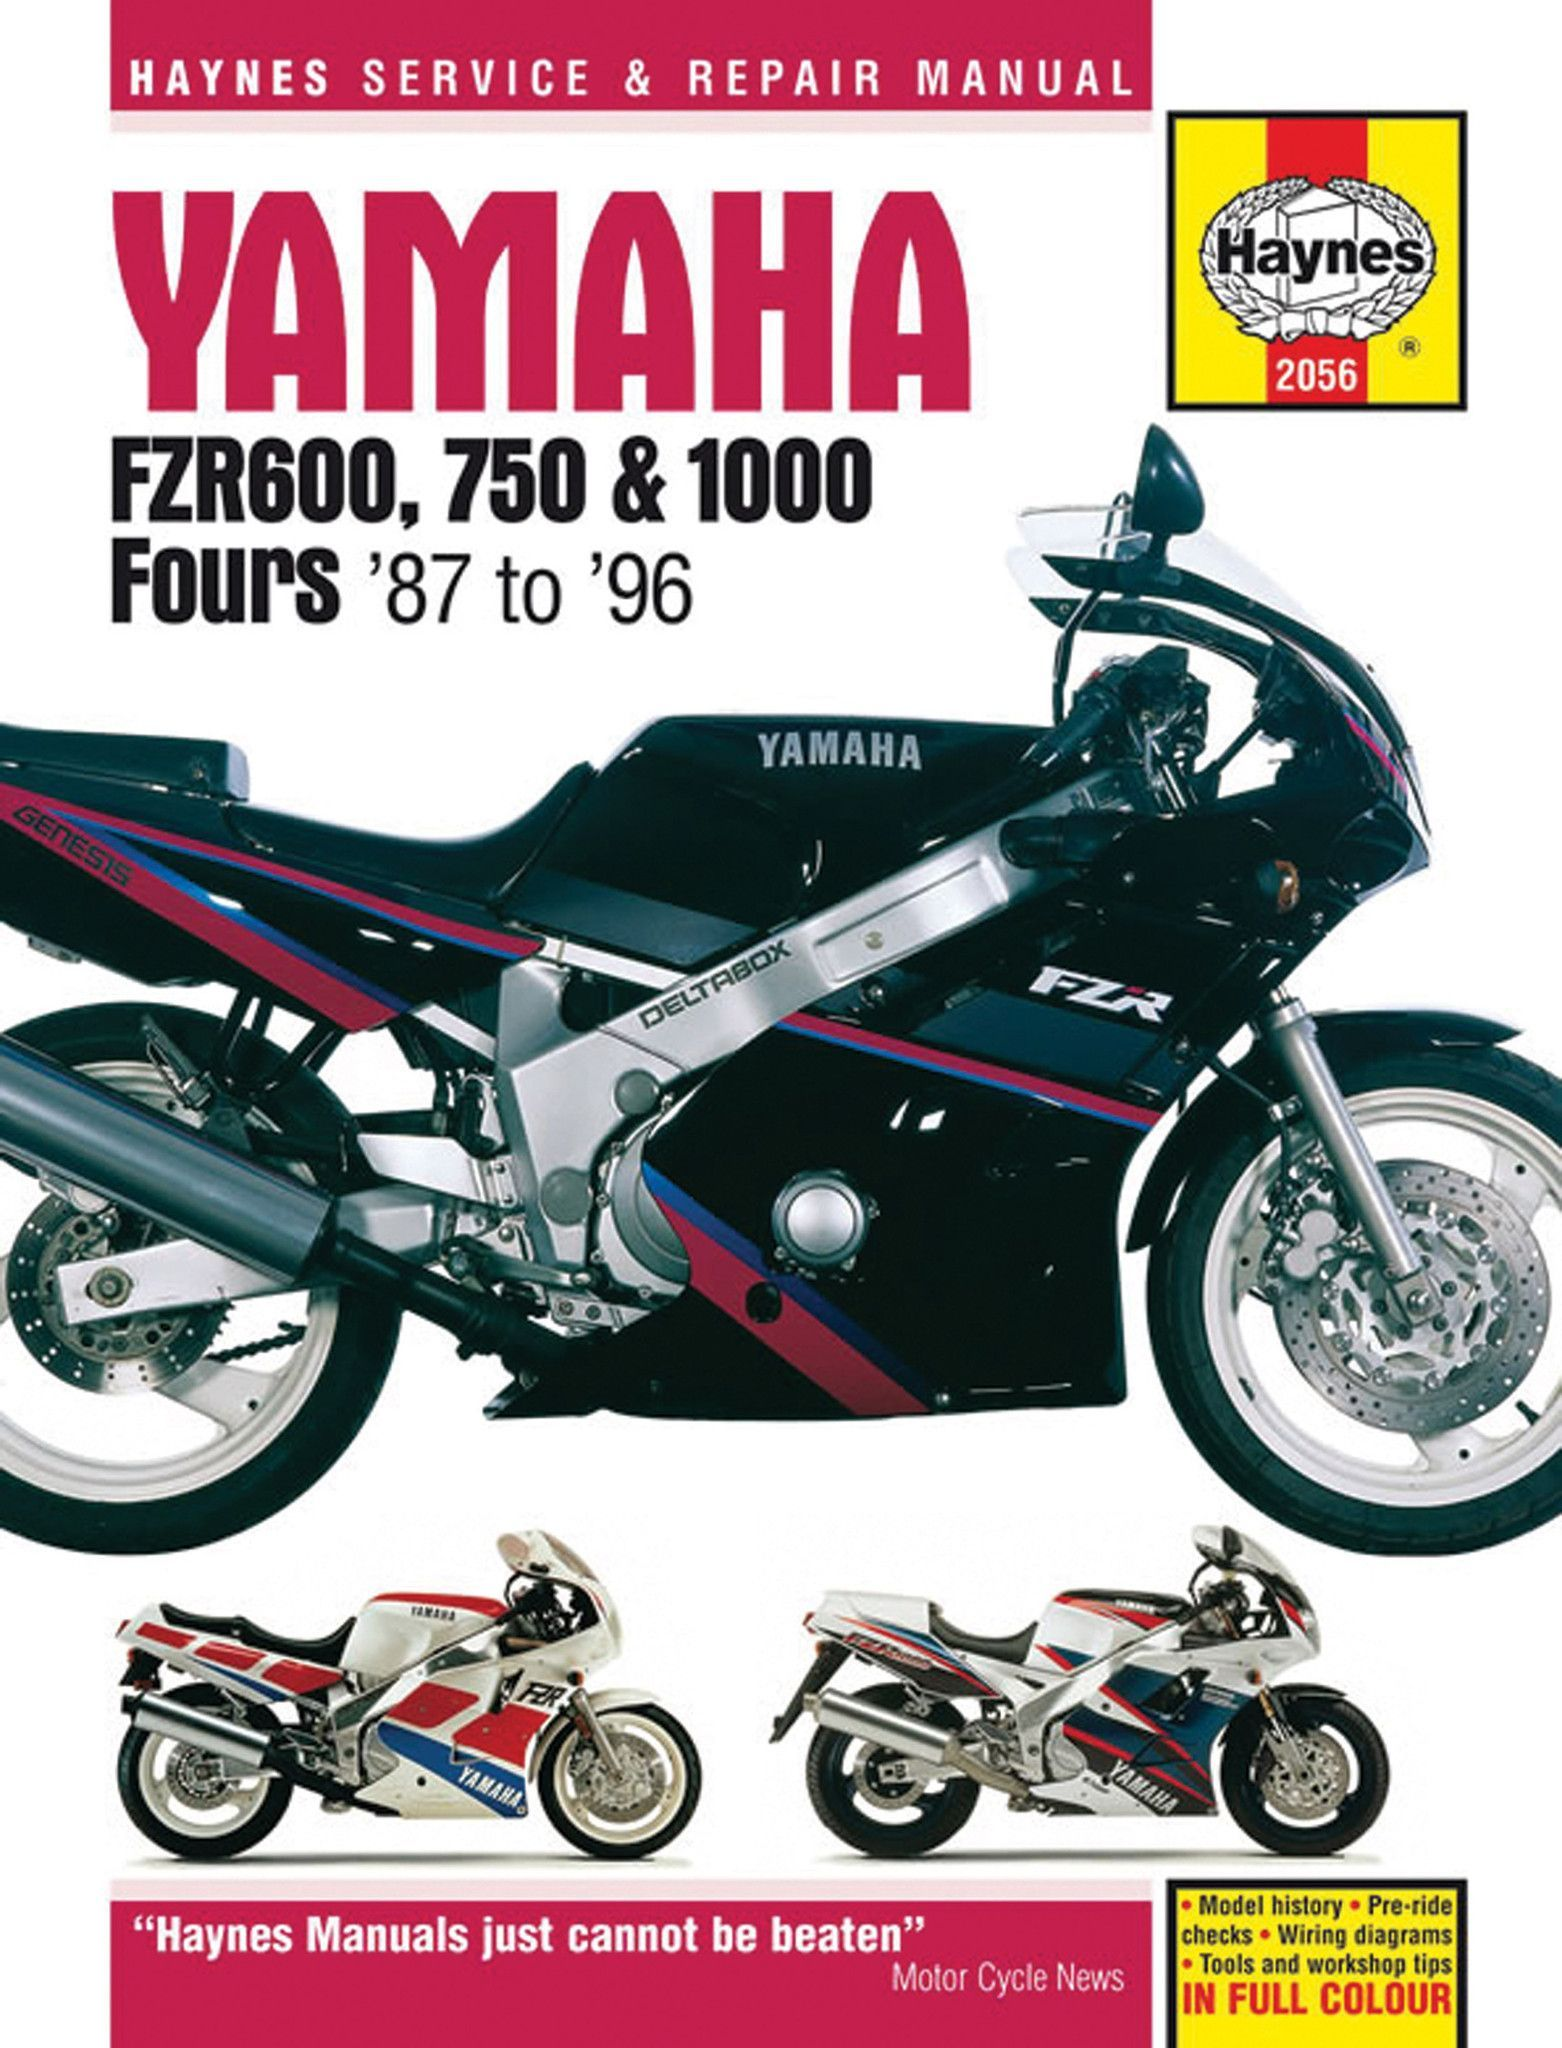 1990 Fzr Yamaha 600 Wiring Diagram Circuit Schematic Suzuki Dt 200 Outboard Haynes M2056 Service Repair Manual For Fzr600 Fzr750 1996